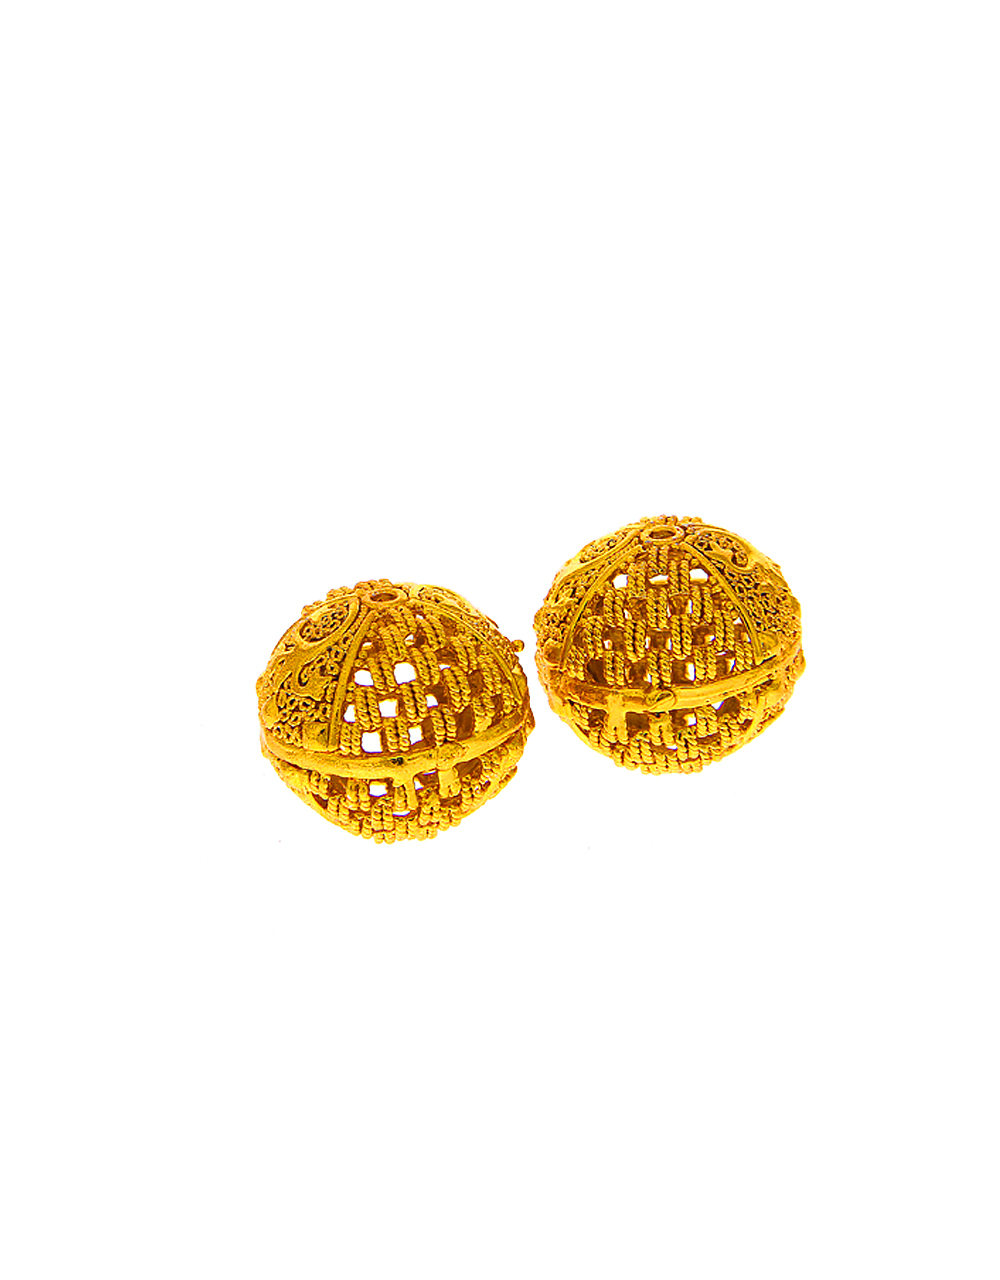 Floral Design Gold Finish Making Jewellery